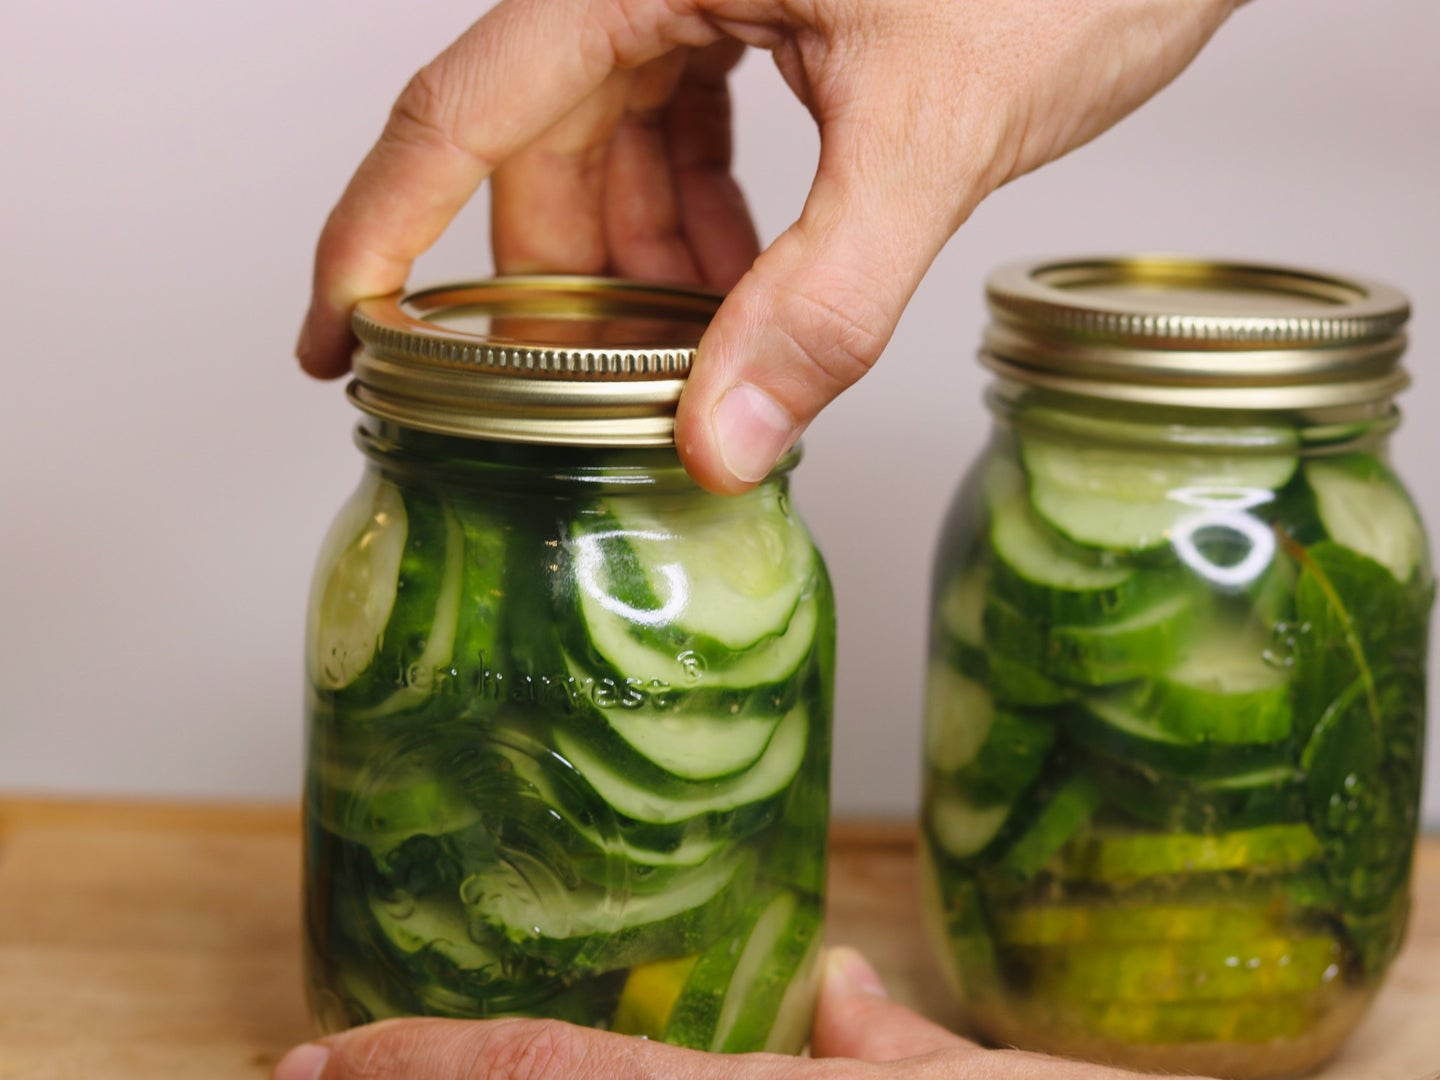 Sealing the lids of canned vegetables